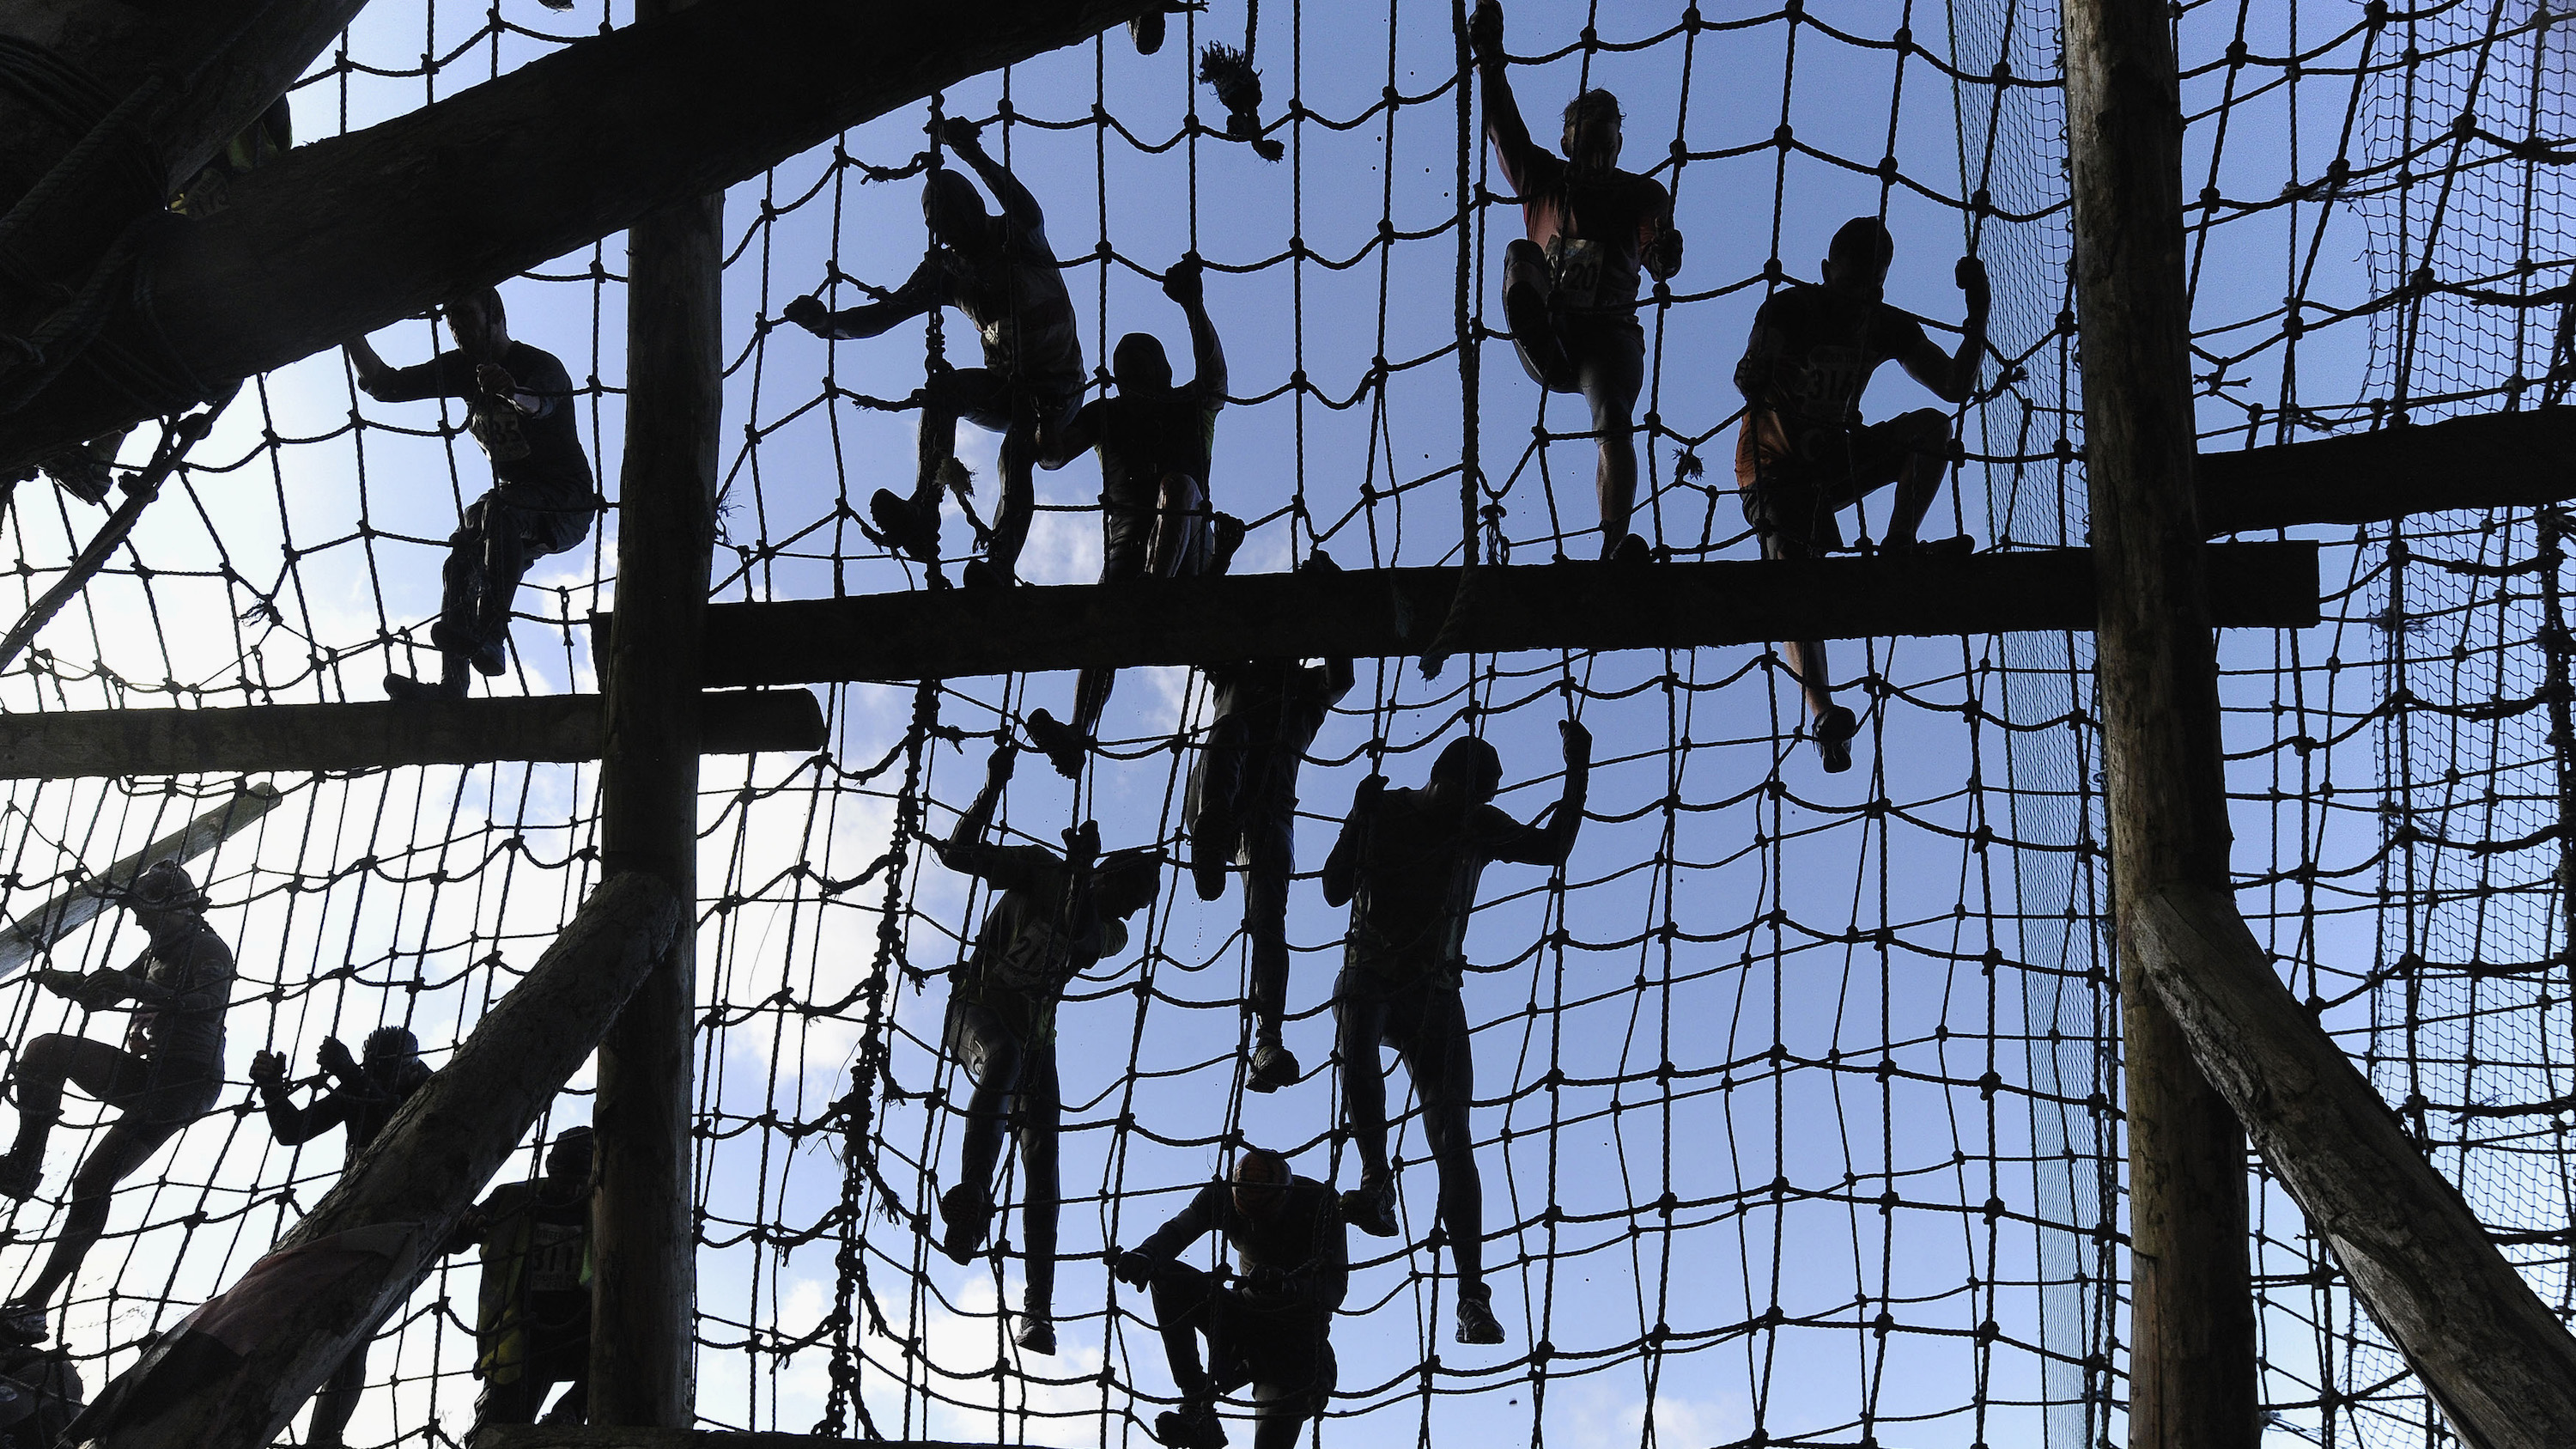 Competitors climb nets during the Tough Guy event in Perton, central England, January 27, 2013. The annual event to raise cash for charity challenges thousands of international competitors in a cross country run followed by an assault course consisting of obstacles including water, fire and tunnels.